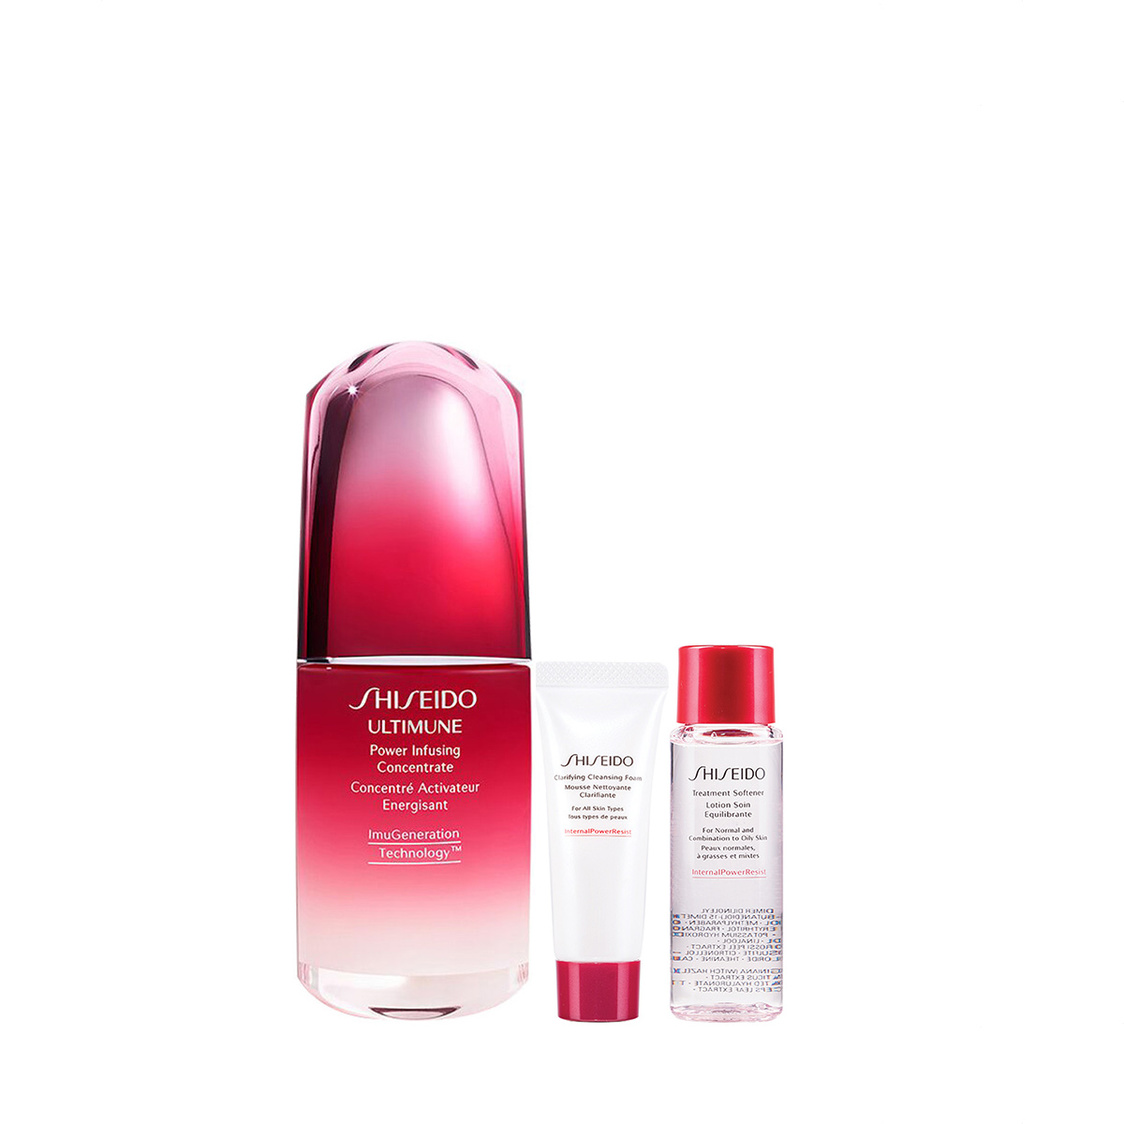 Shiseido Ultimune Power Infusing Concentrate N 30ml worth 133